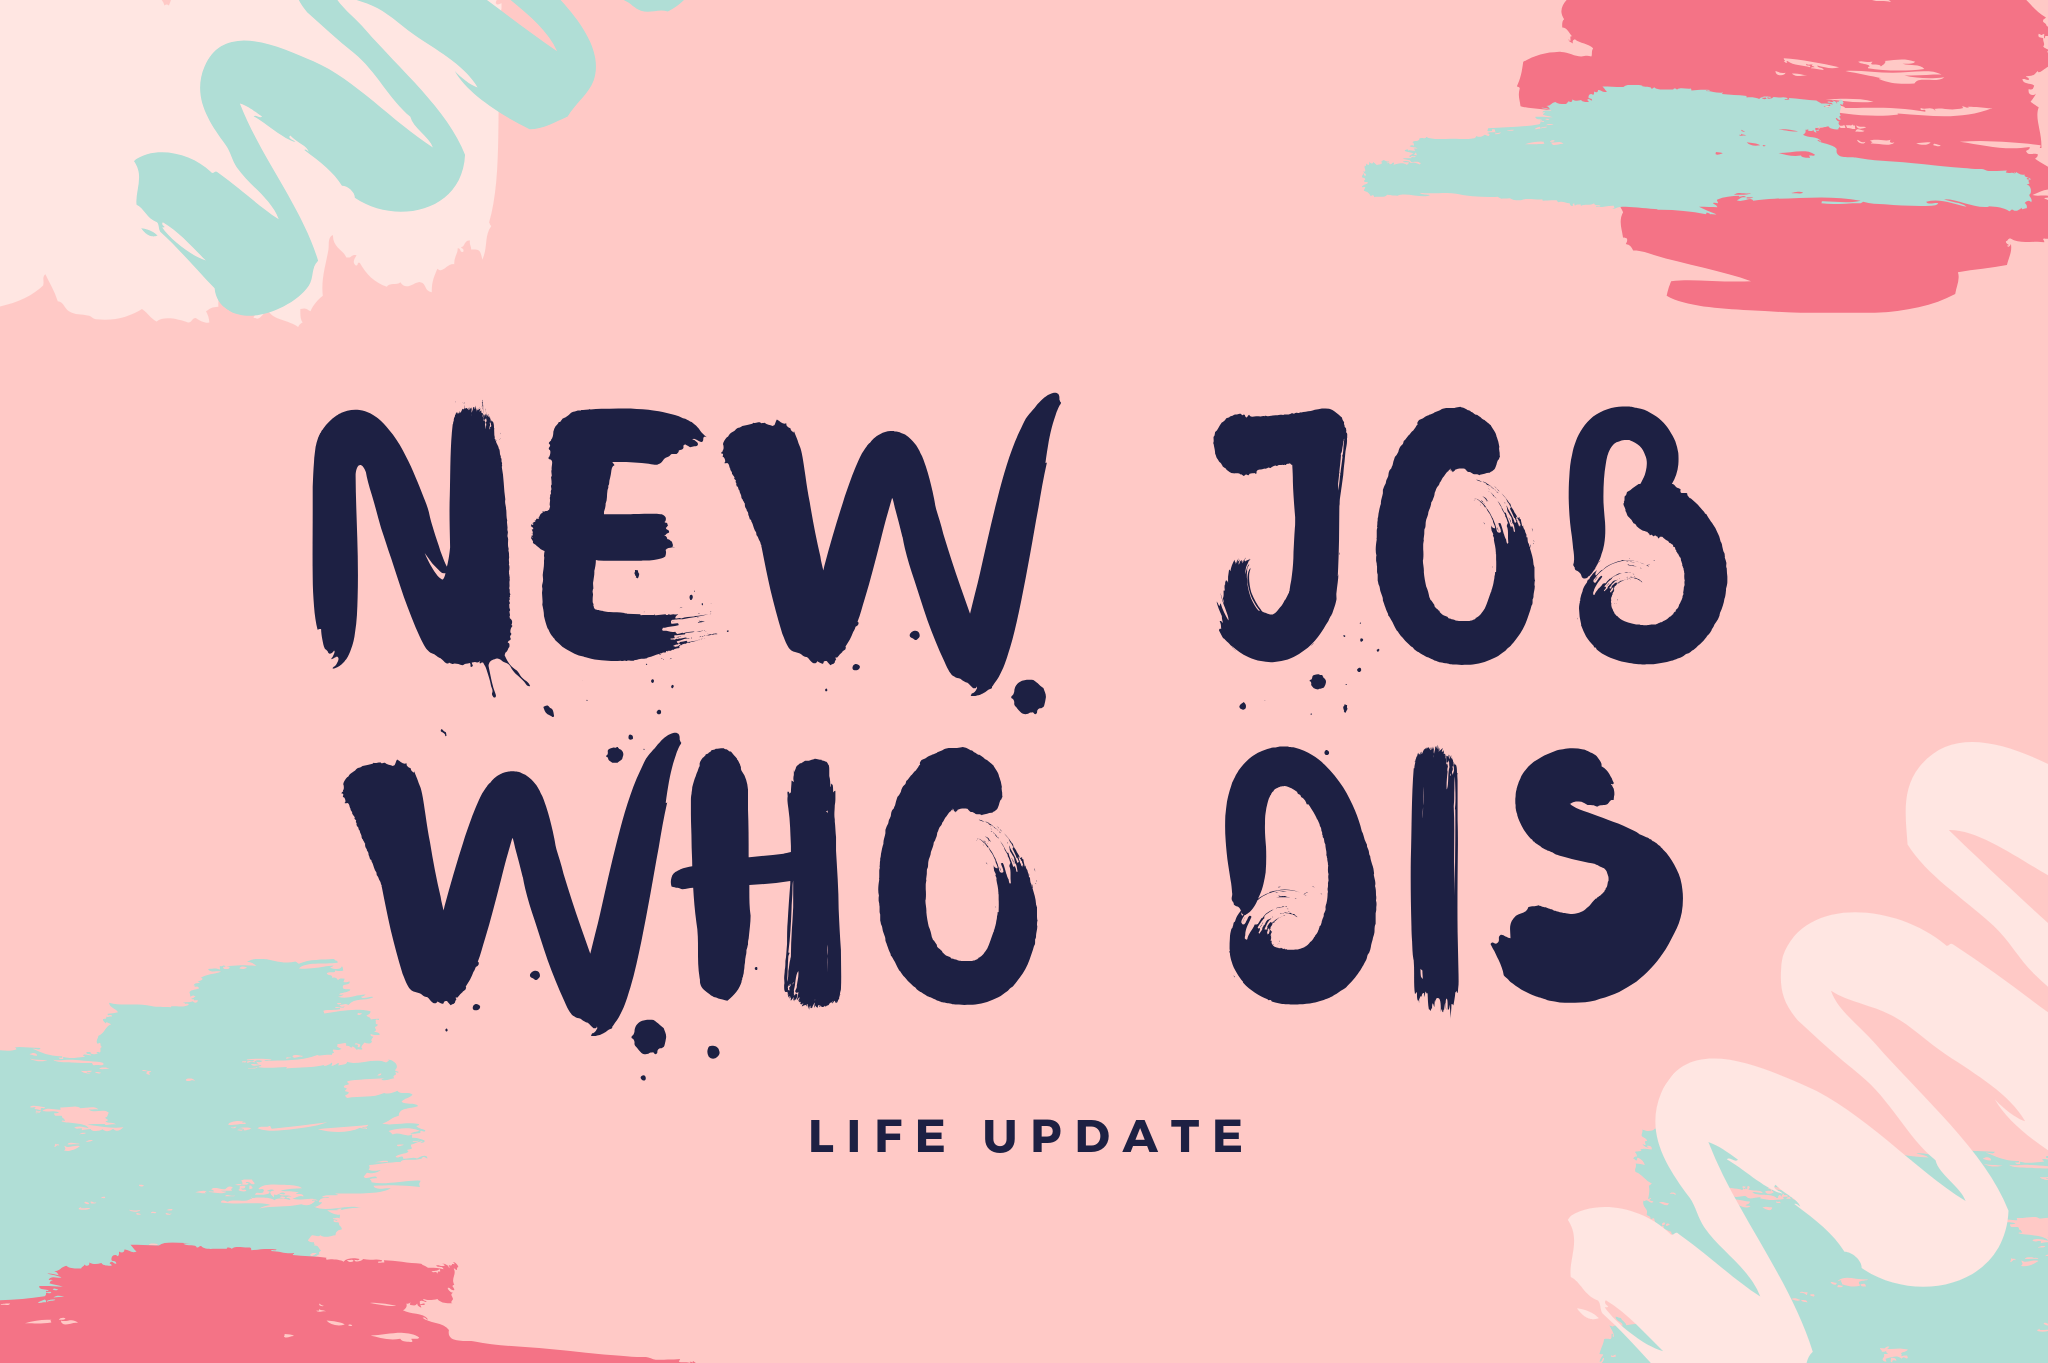 life update new job